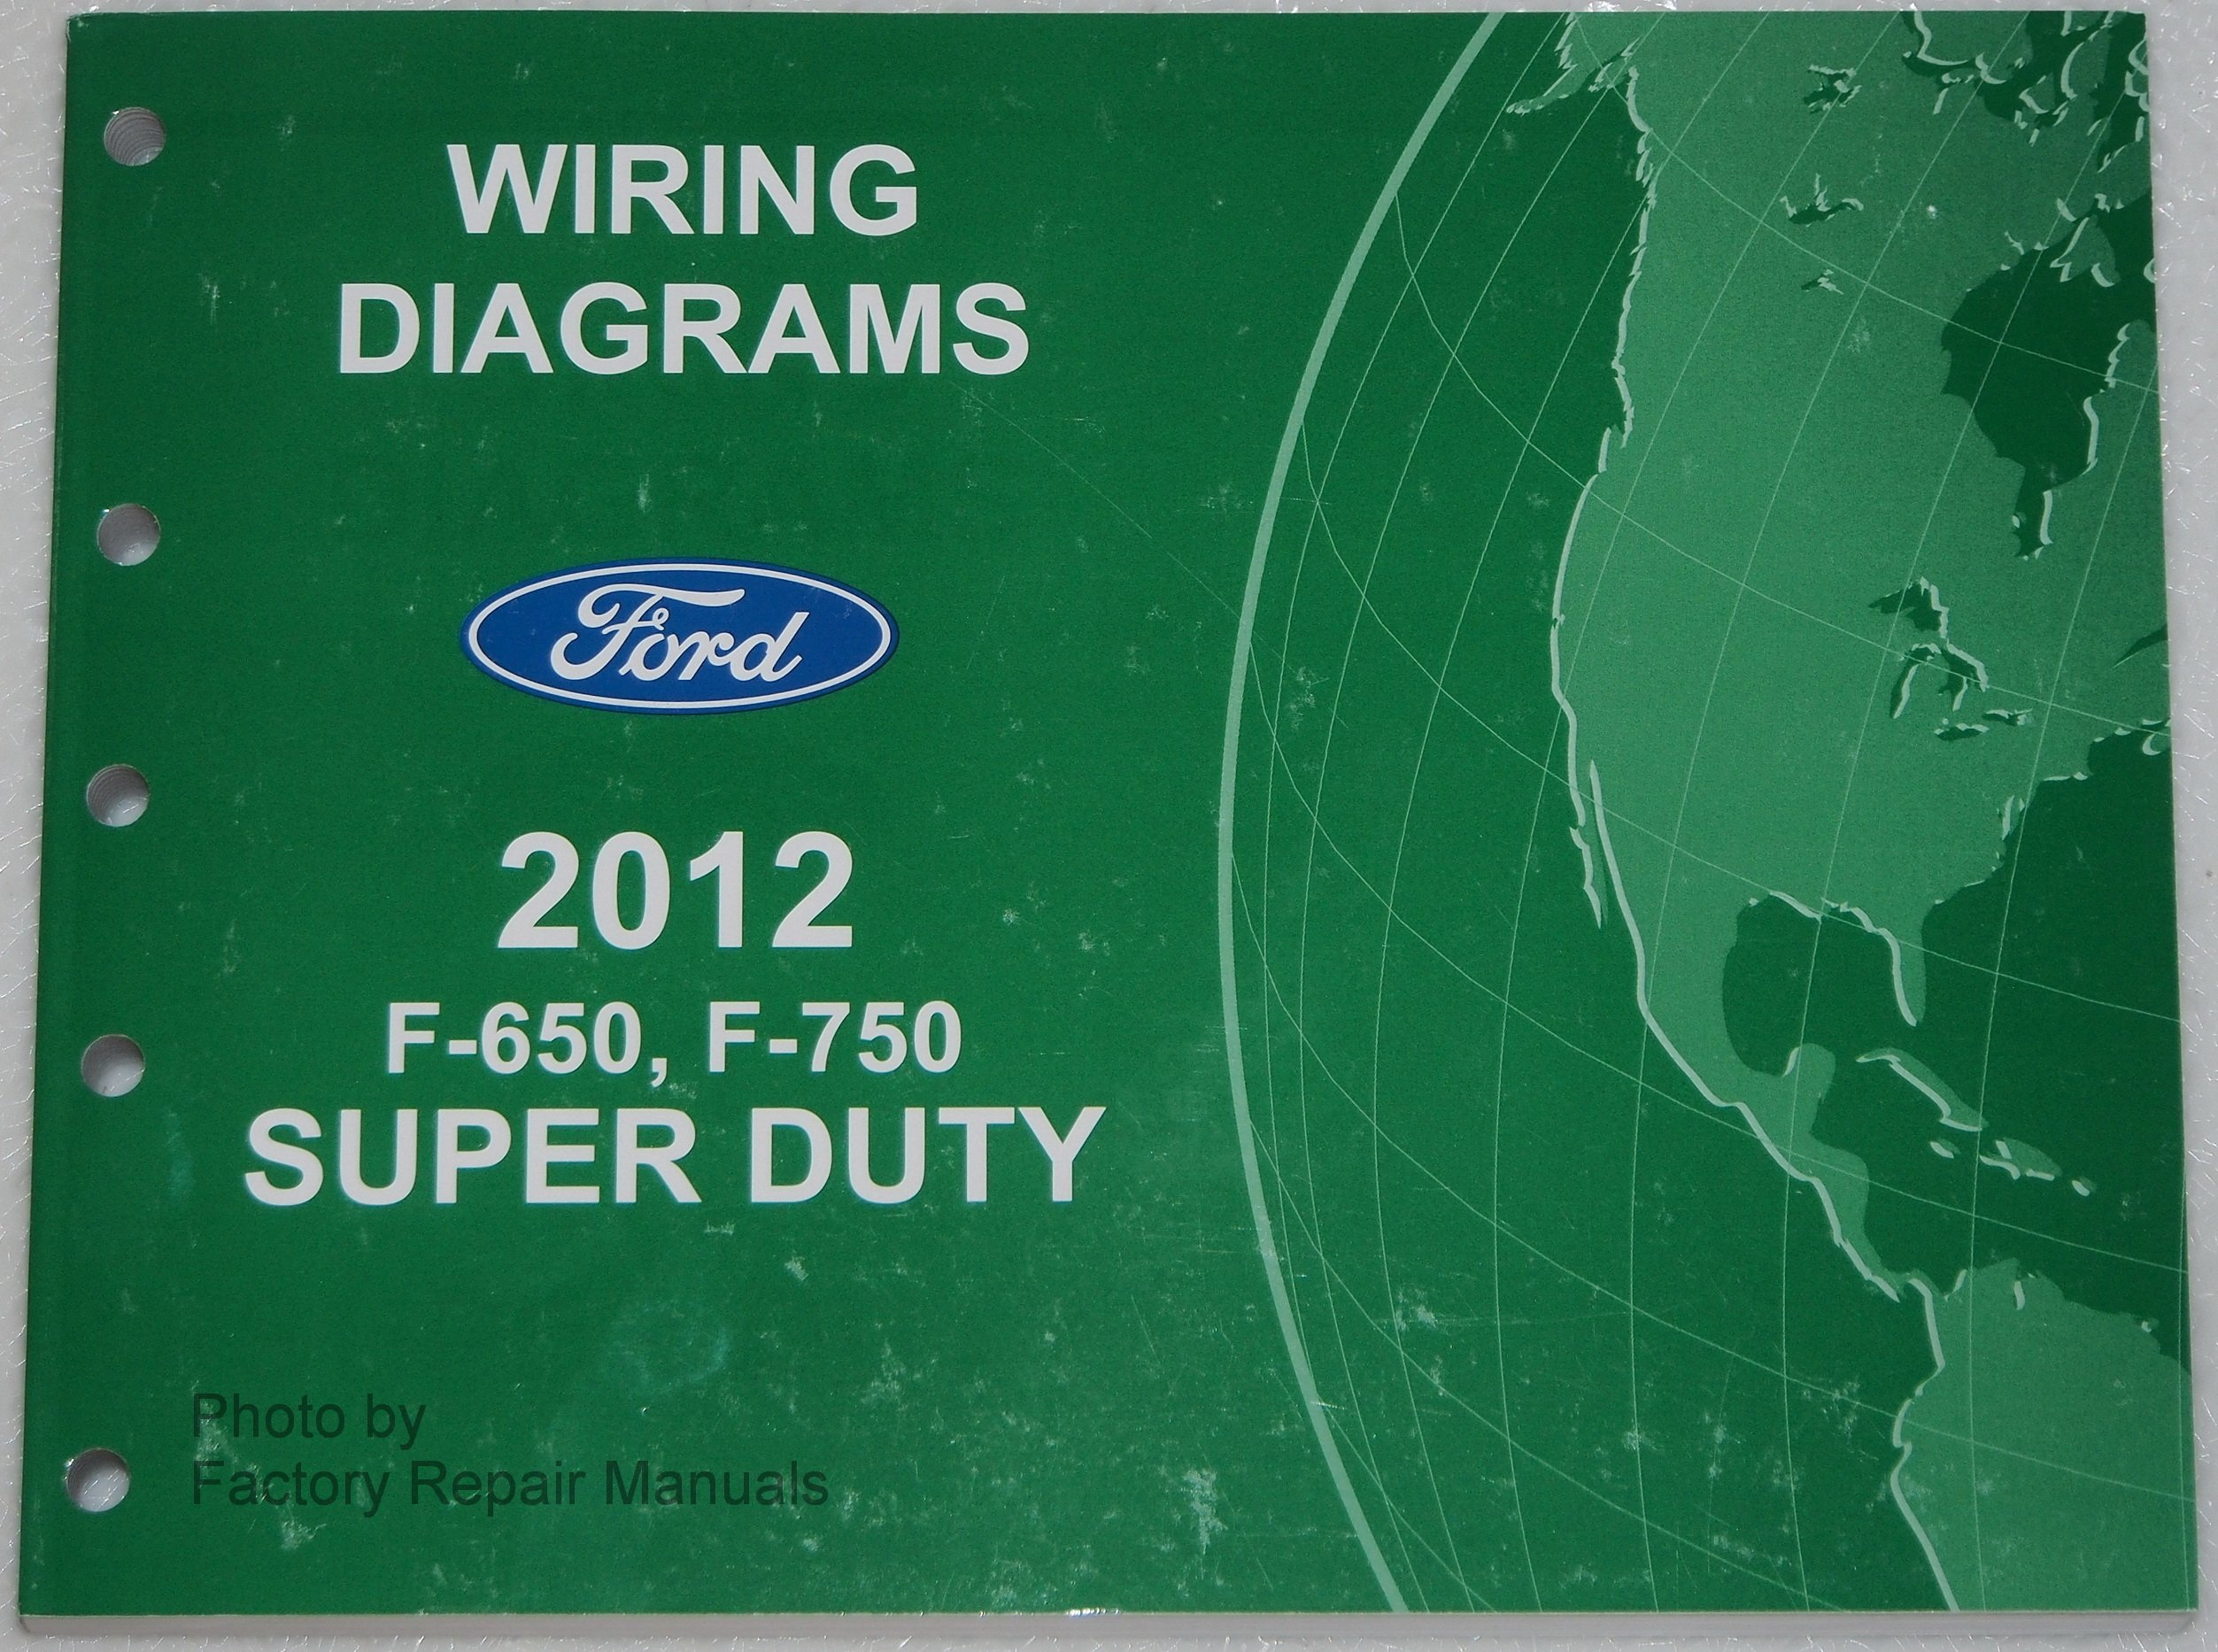 91KkFIScY%2BL 2012 f650 f750 wiring diagram ford motor company amazon com books 2013 ford wiring diagram at bakdesigns.co